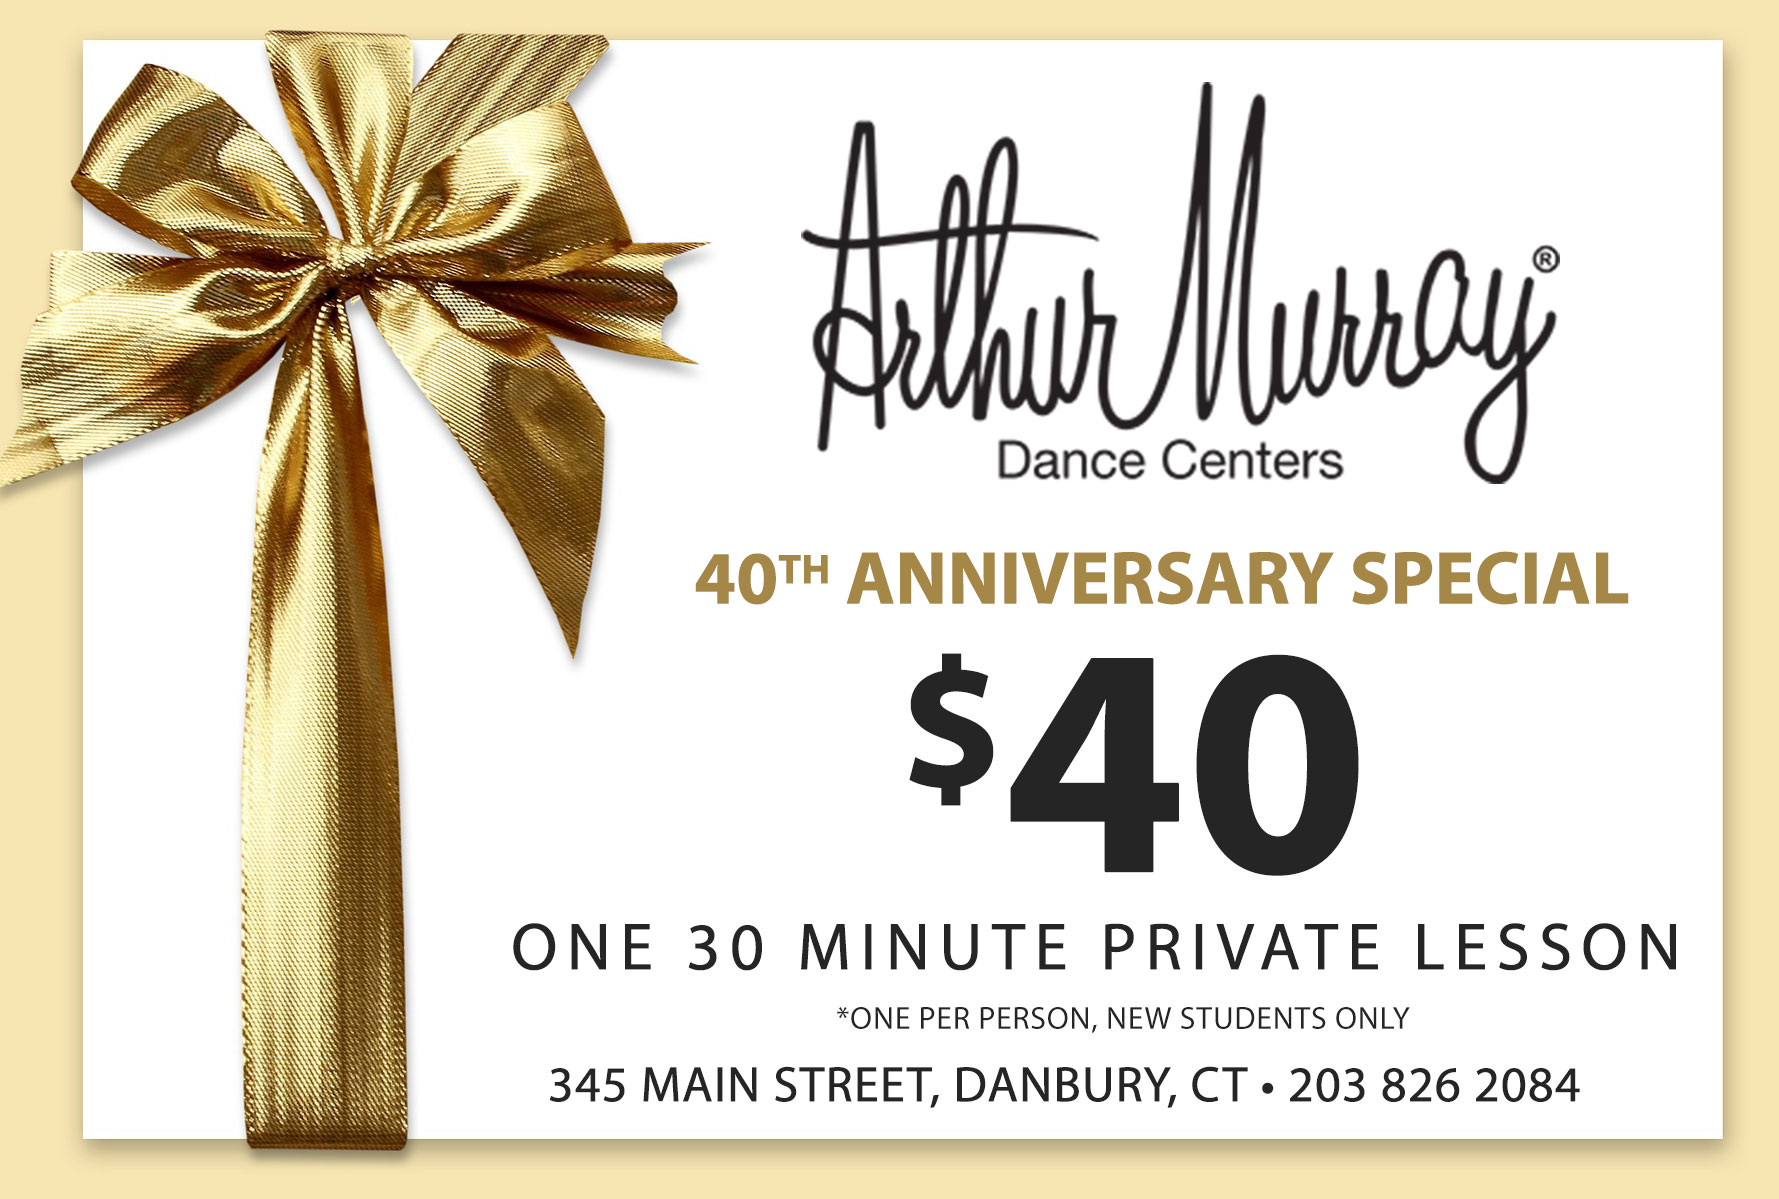 40th anniversary special $40 new students